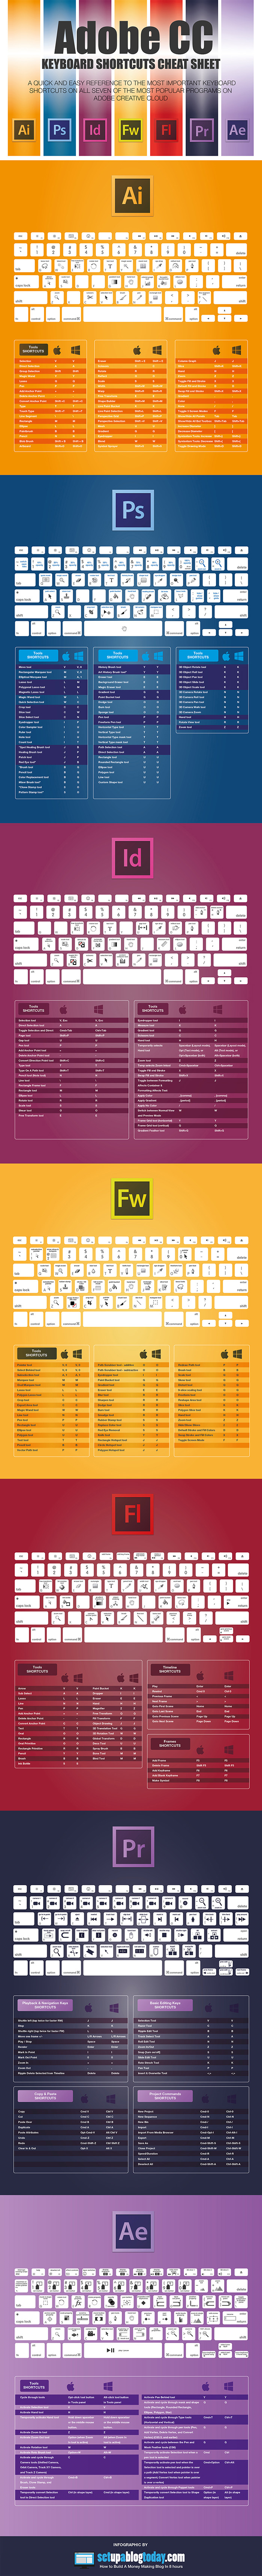 The Ultimate Adobe CC Keyboard Shortcuts Guide